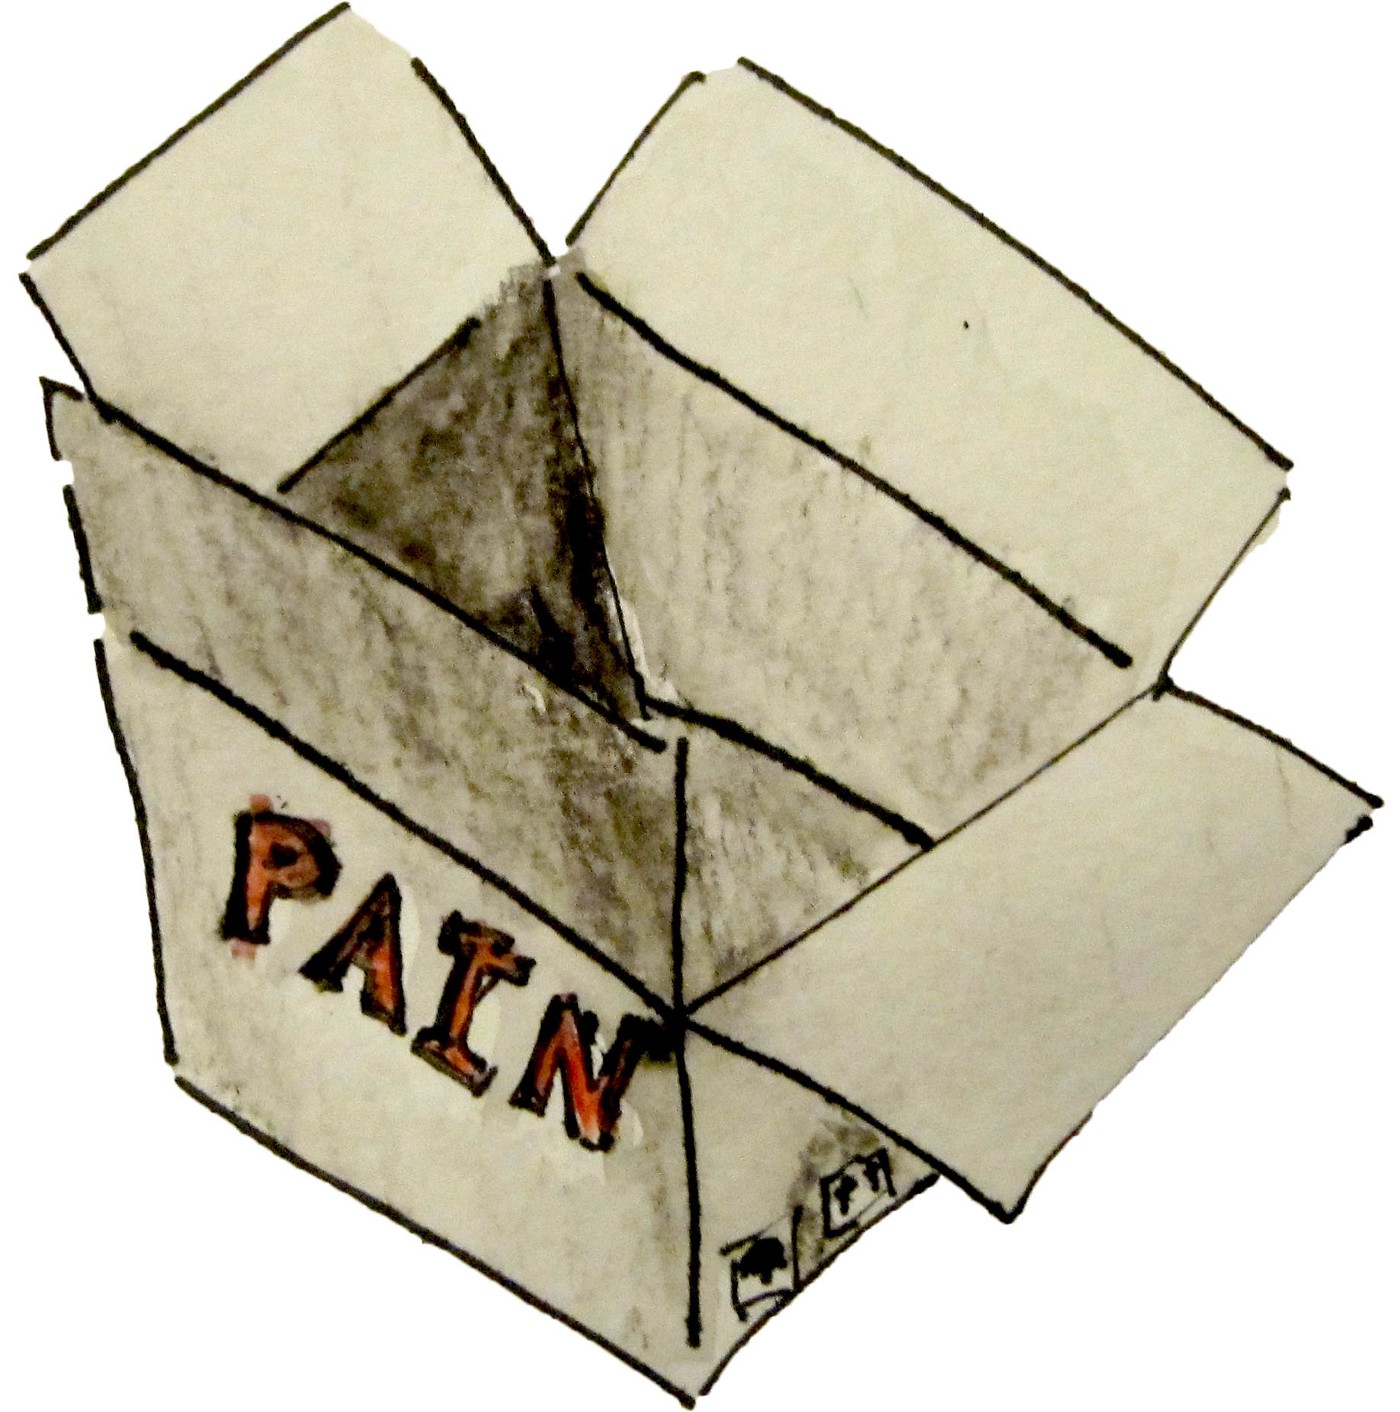 hight resolution of a box with pain inside